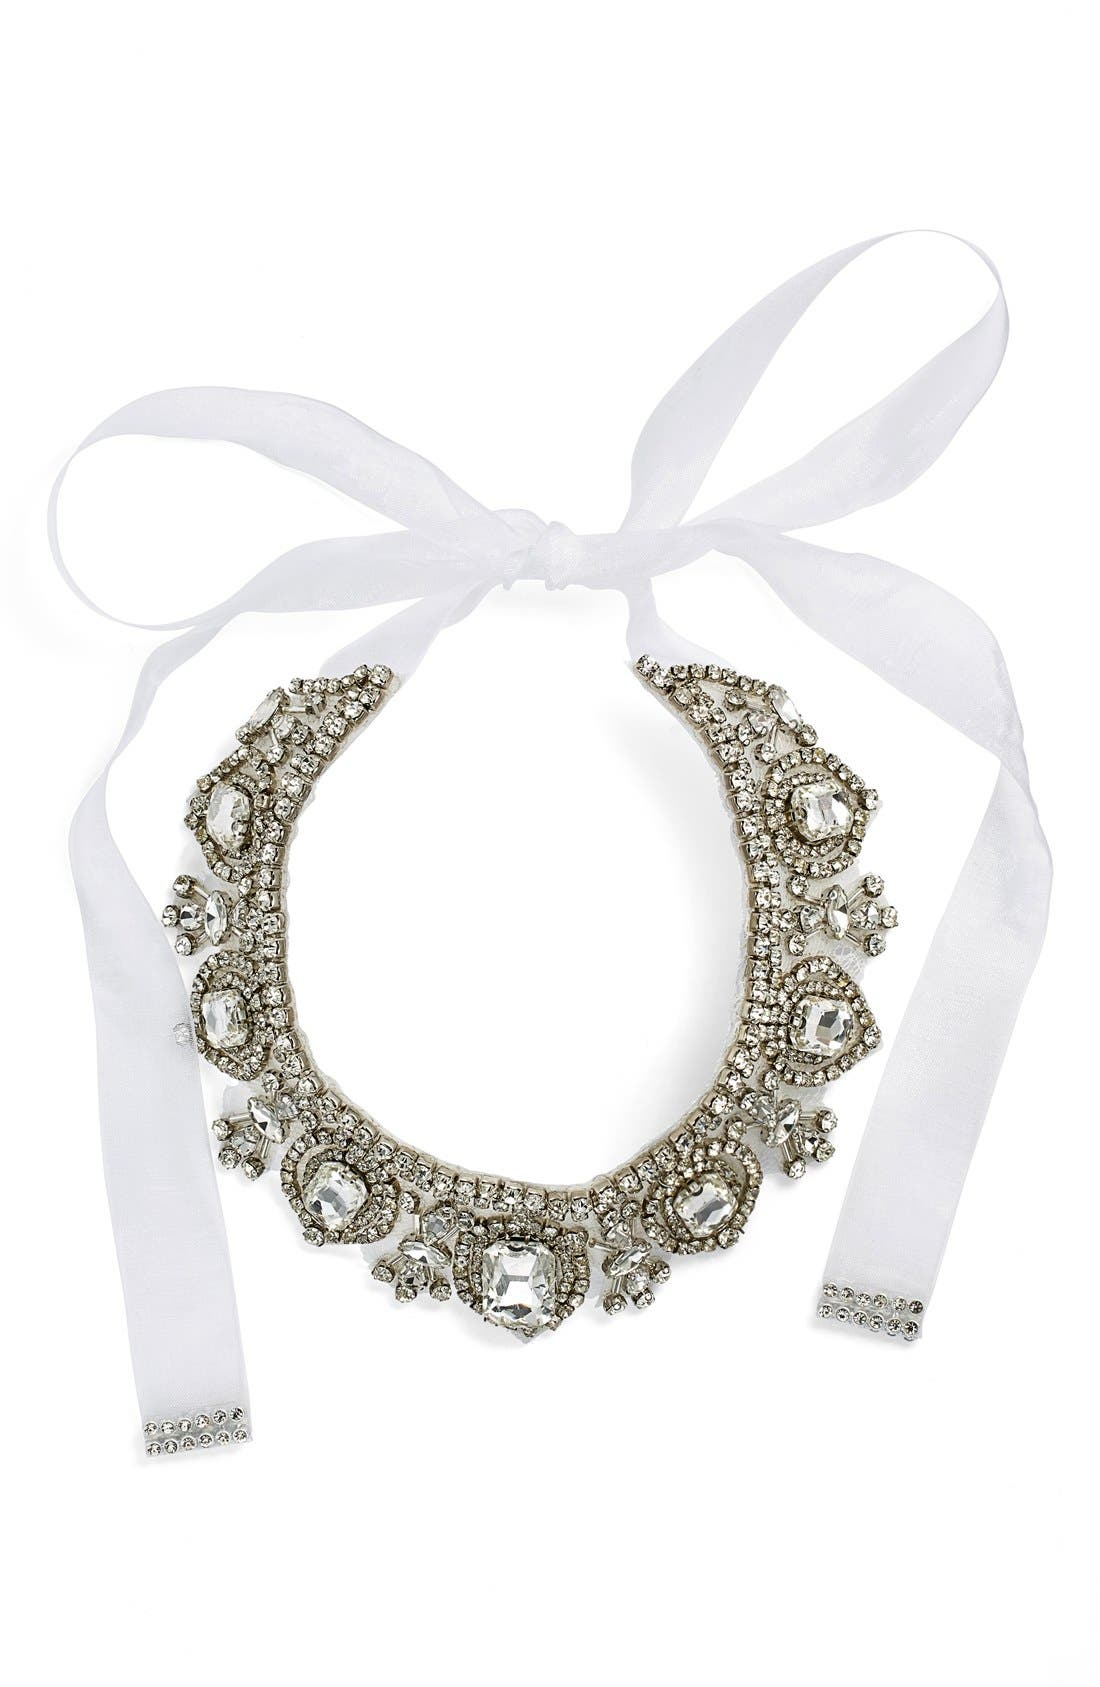 Main Image - Nina 'Glamorous' Tie Collar Necklace